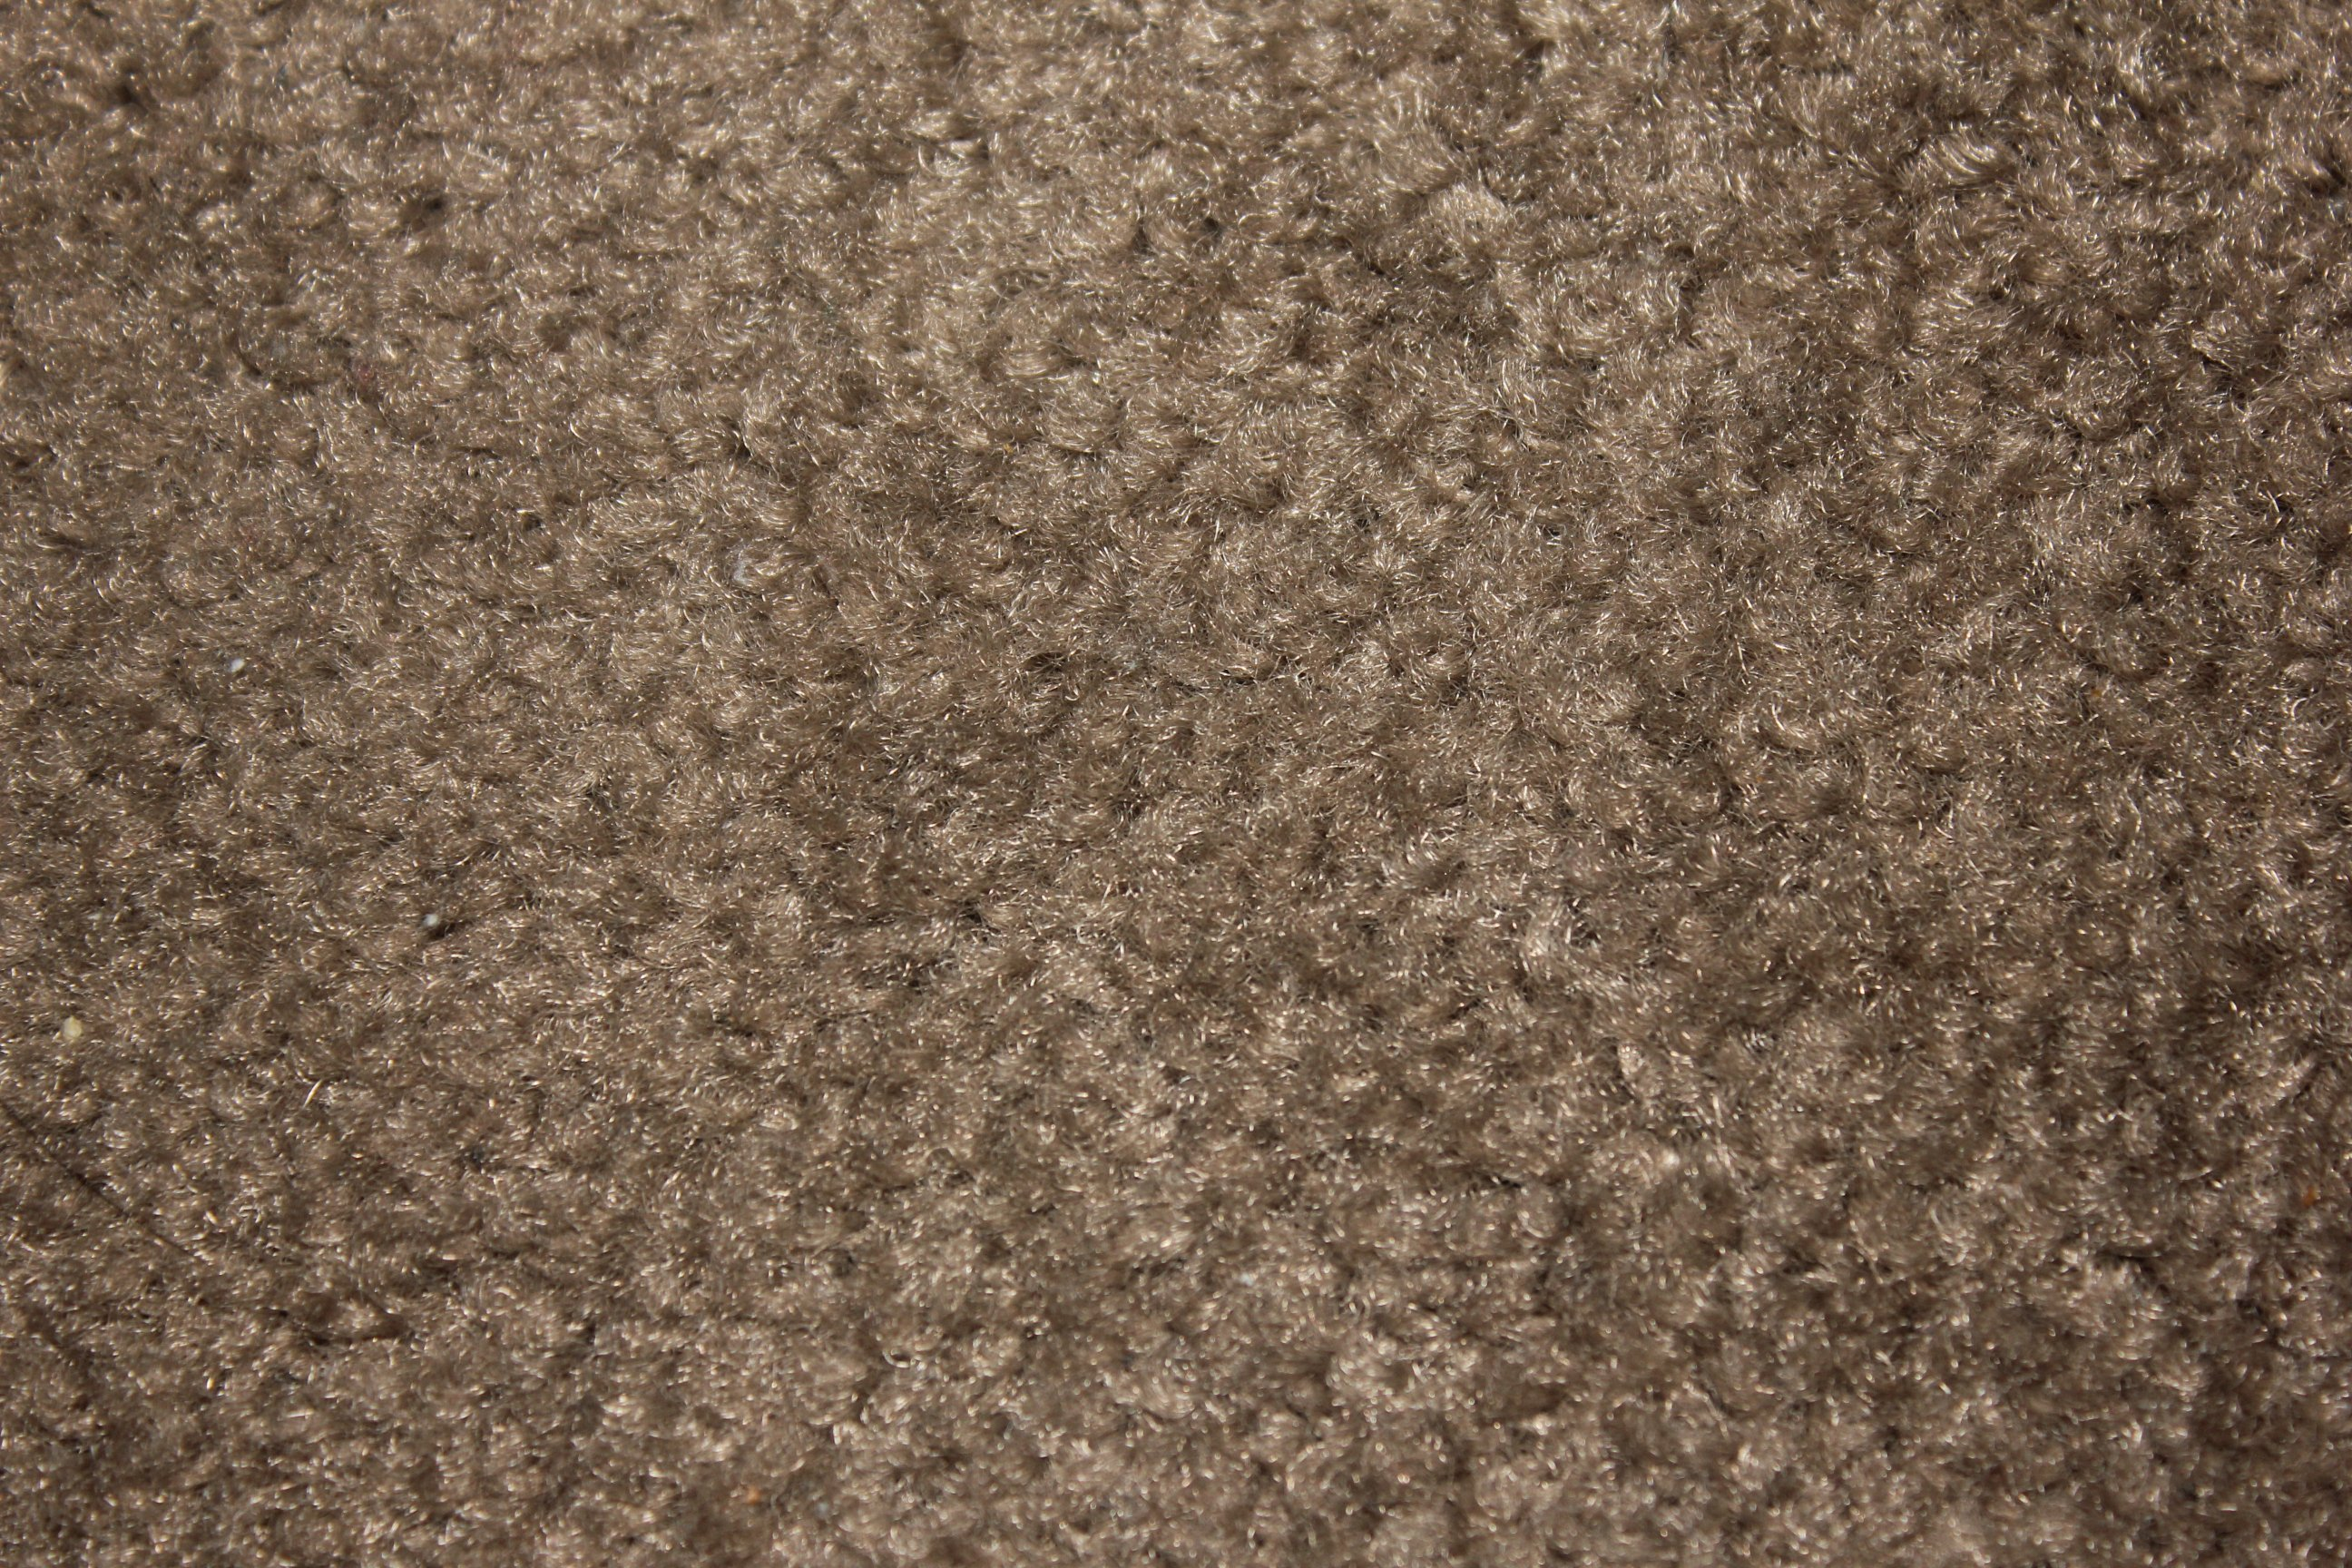 Carpet texture photo